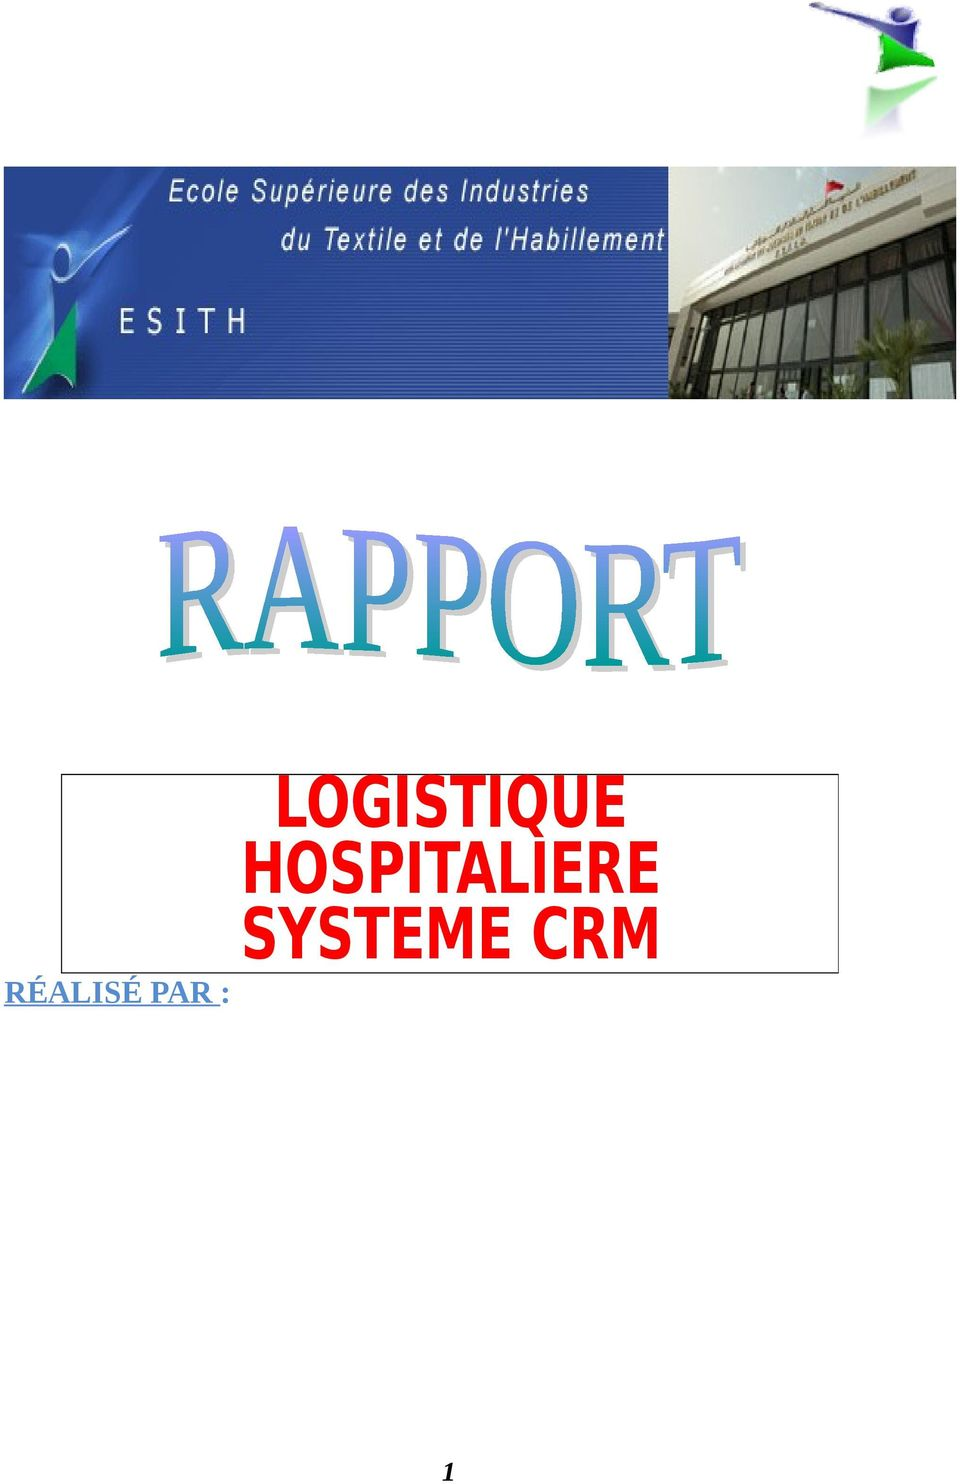 HOSPITALIERE